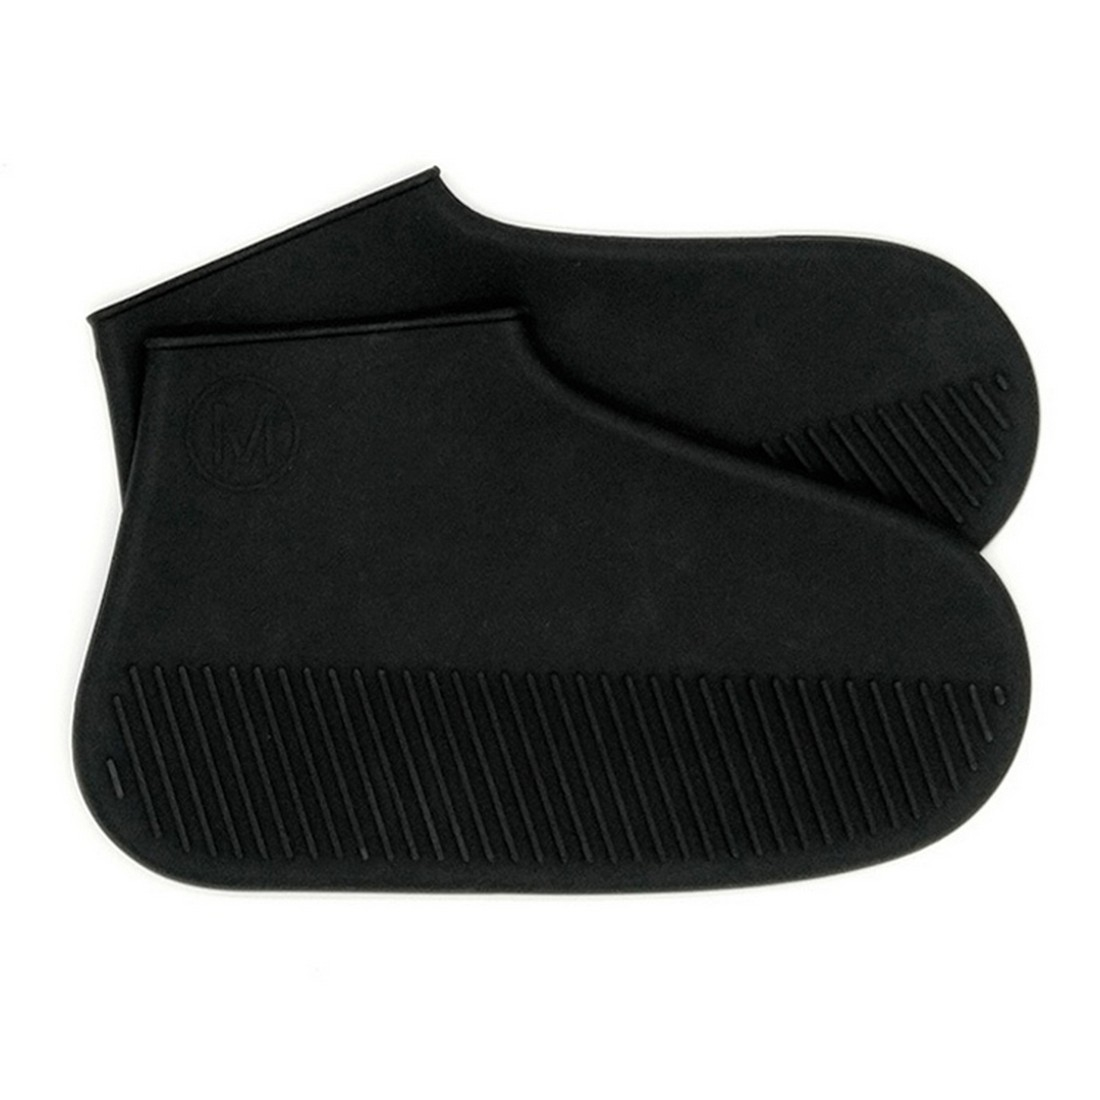 Recyclable Silicone Overshoes Rain Waterproof Shoe Cover Boot Cover Protector.